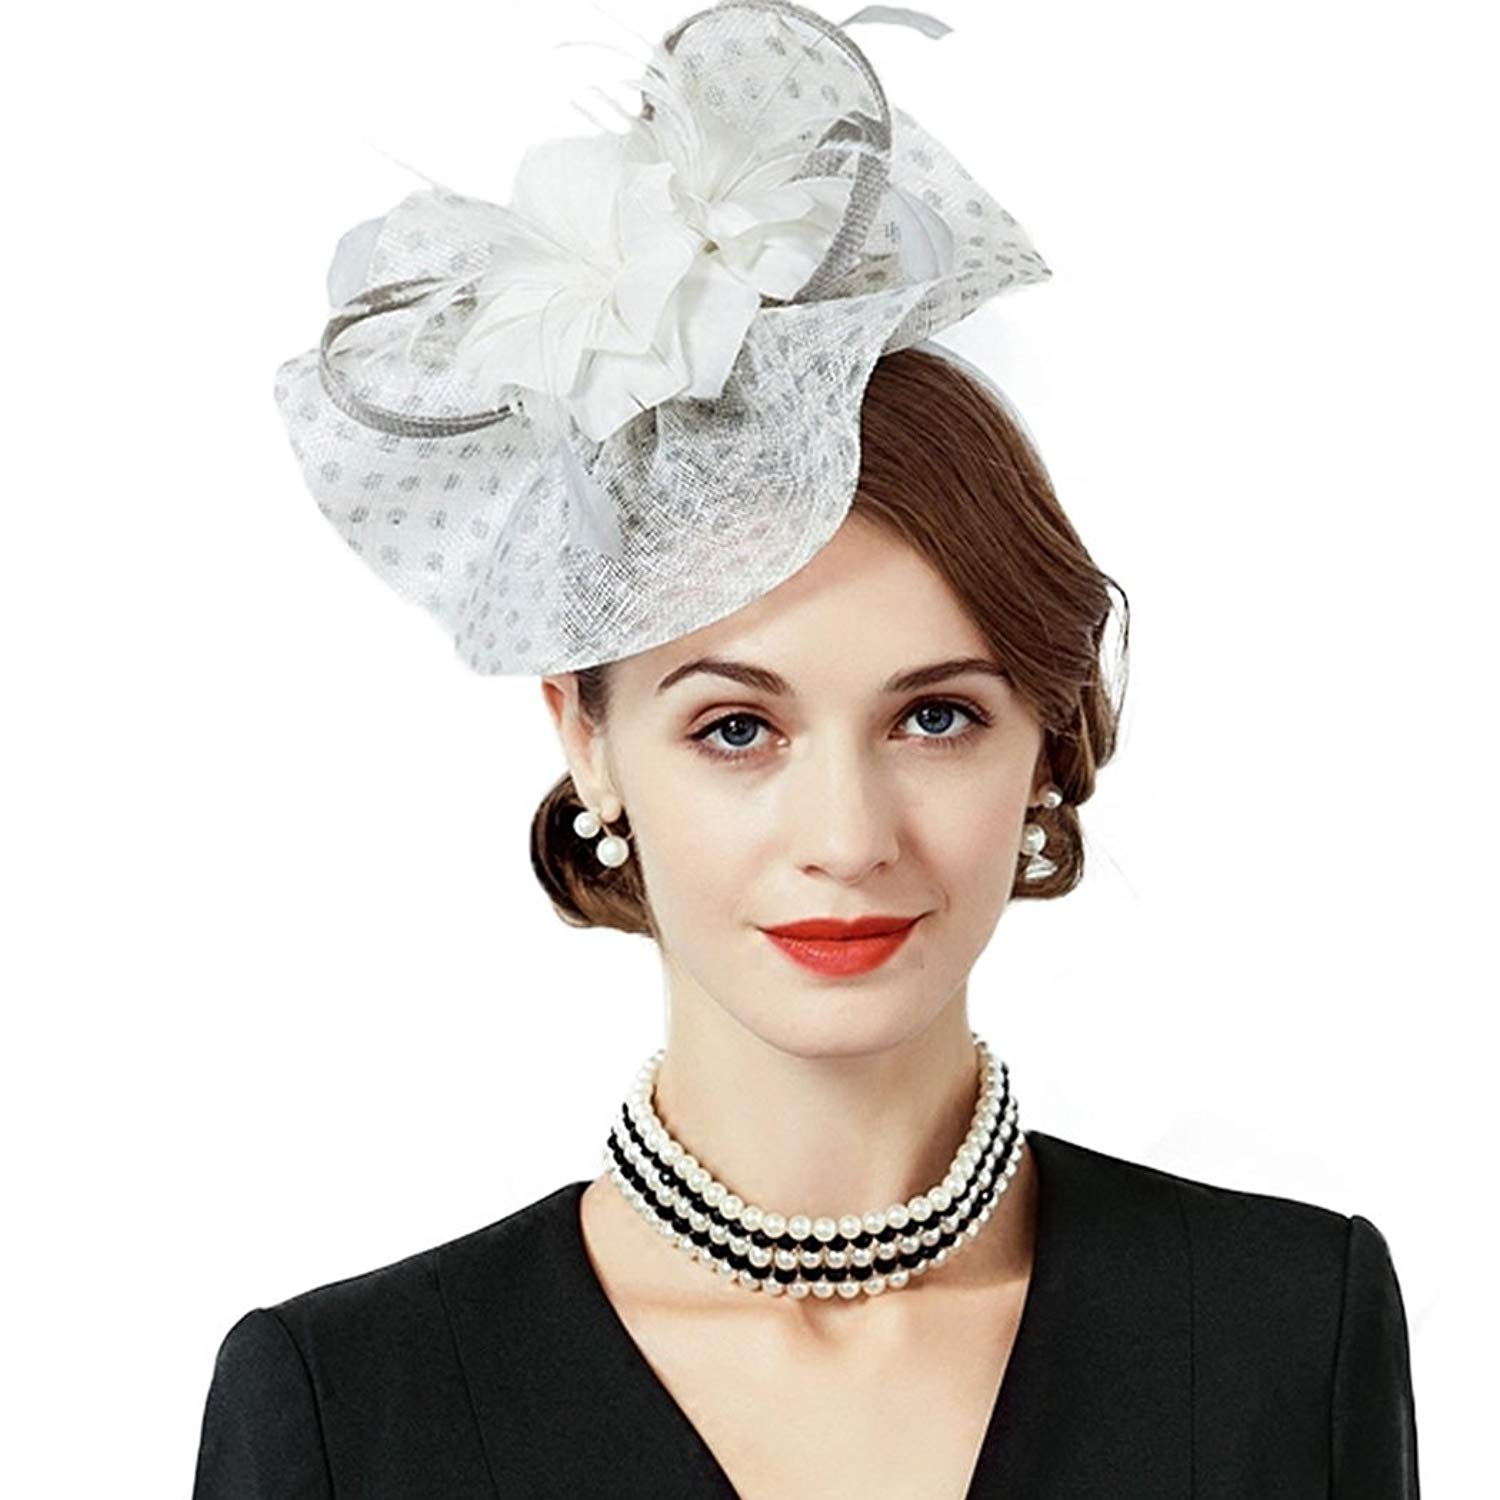 036dd7b6 Get Quotations · Womens Fascinators Sinamay White Wedding Derby Hats  Feather Pillbox Caps